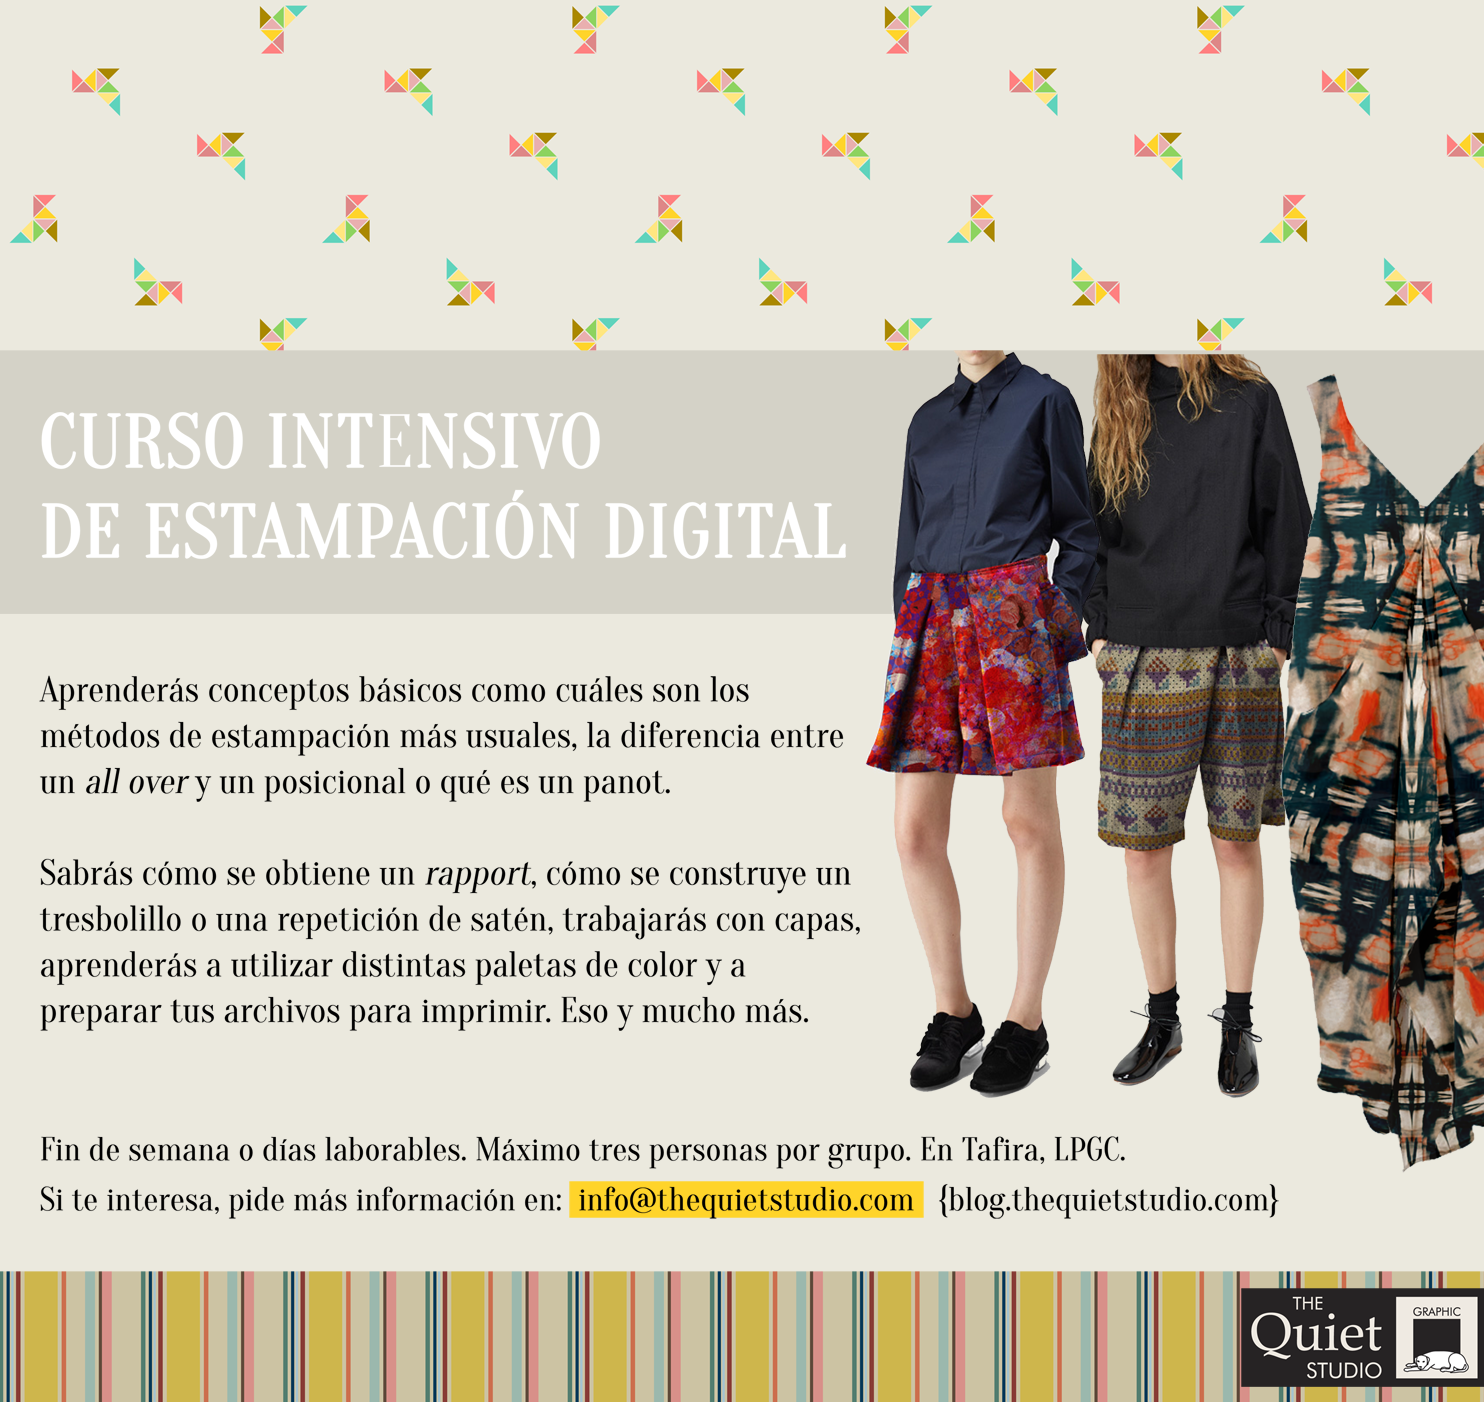 Curso intensivo de estampación digital